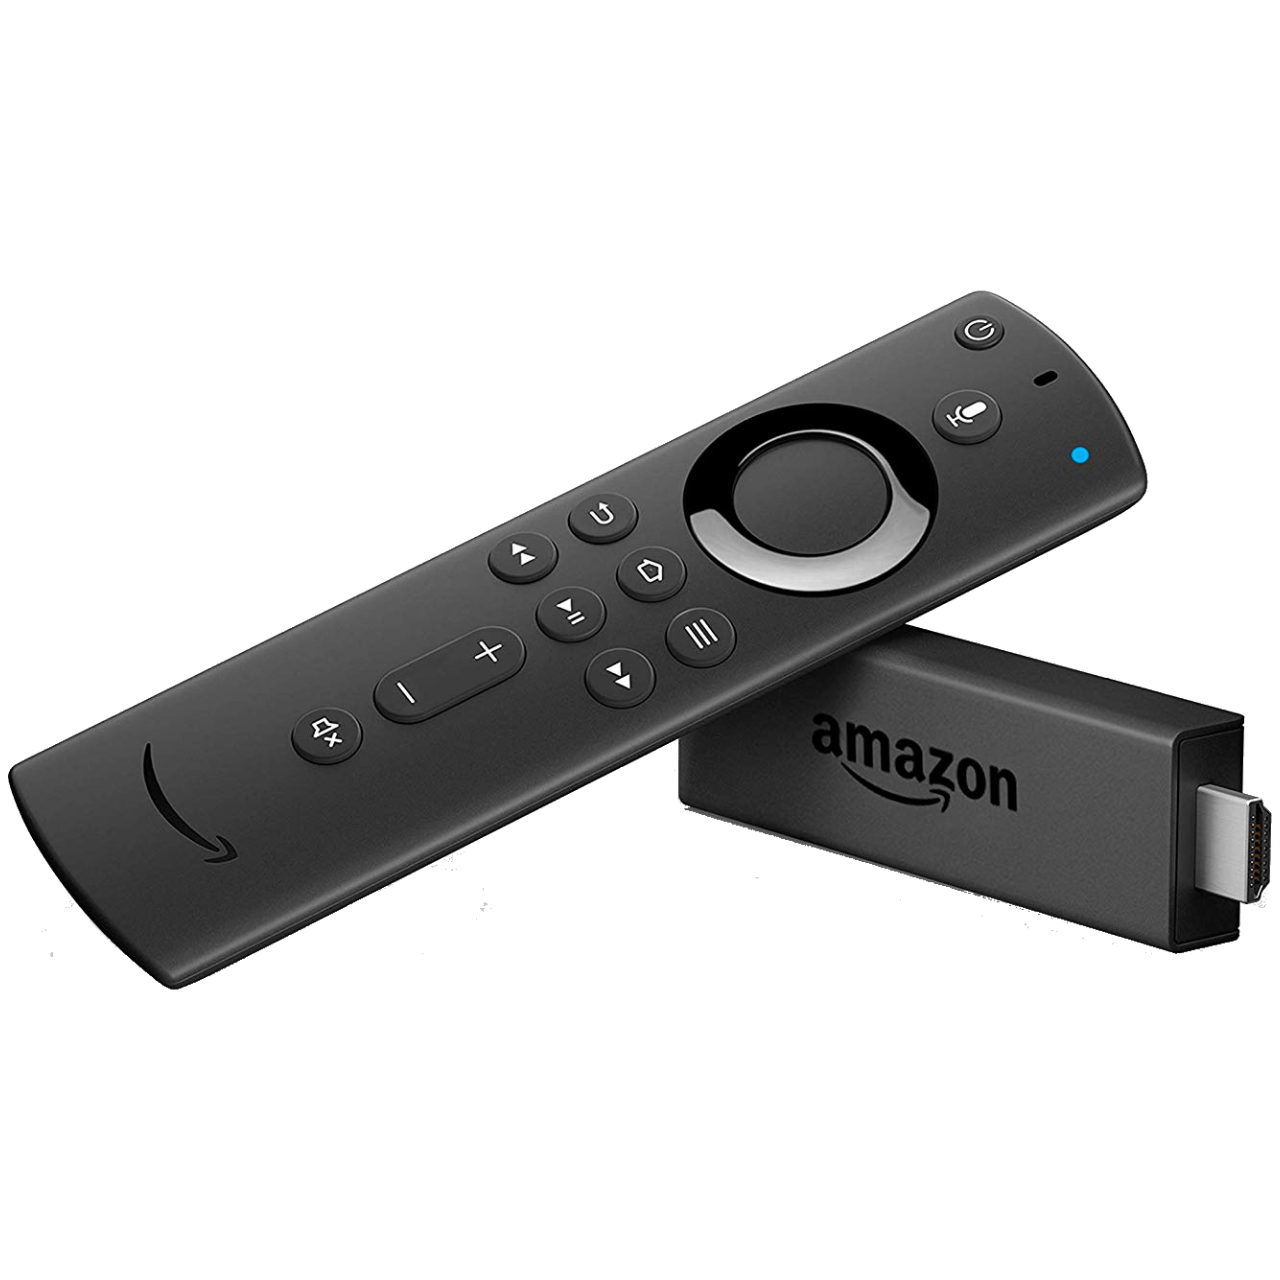 Amazon Fire Tv Stick Test